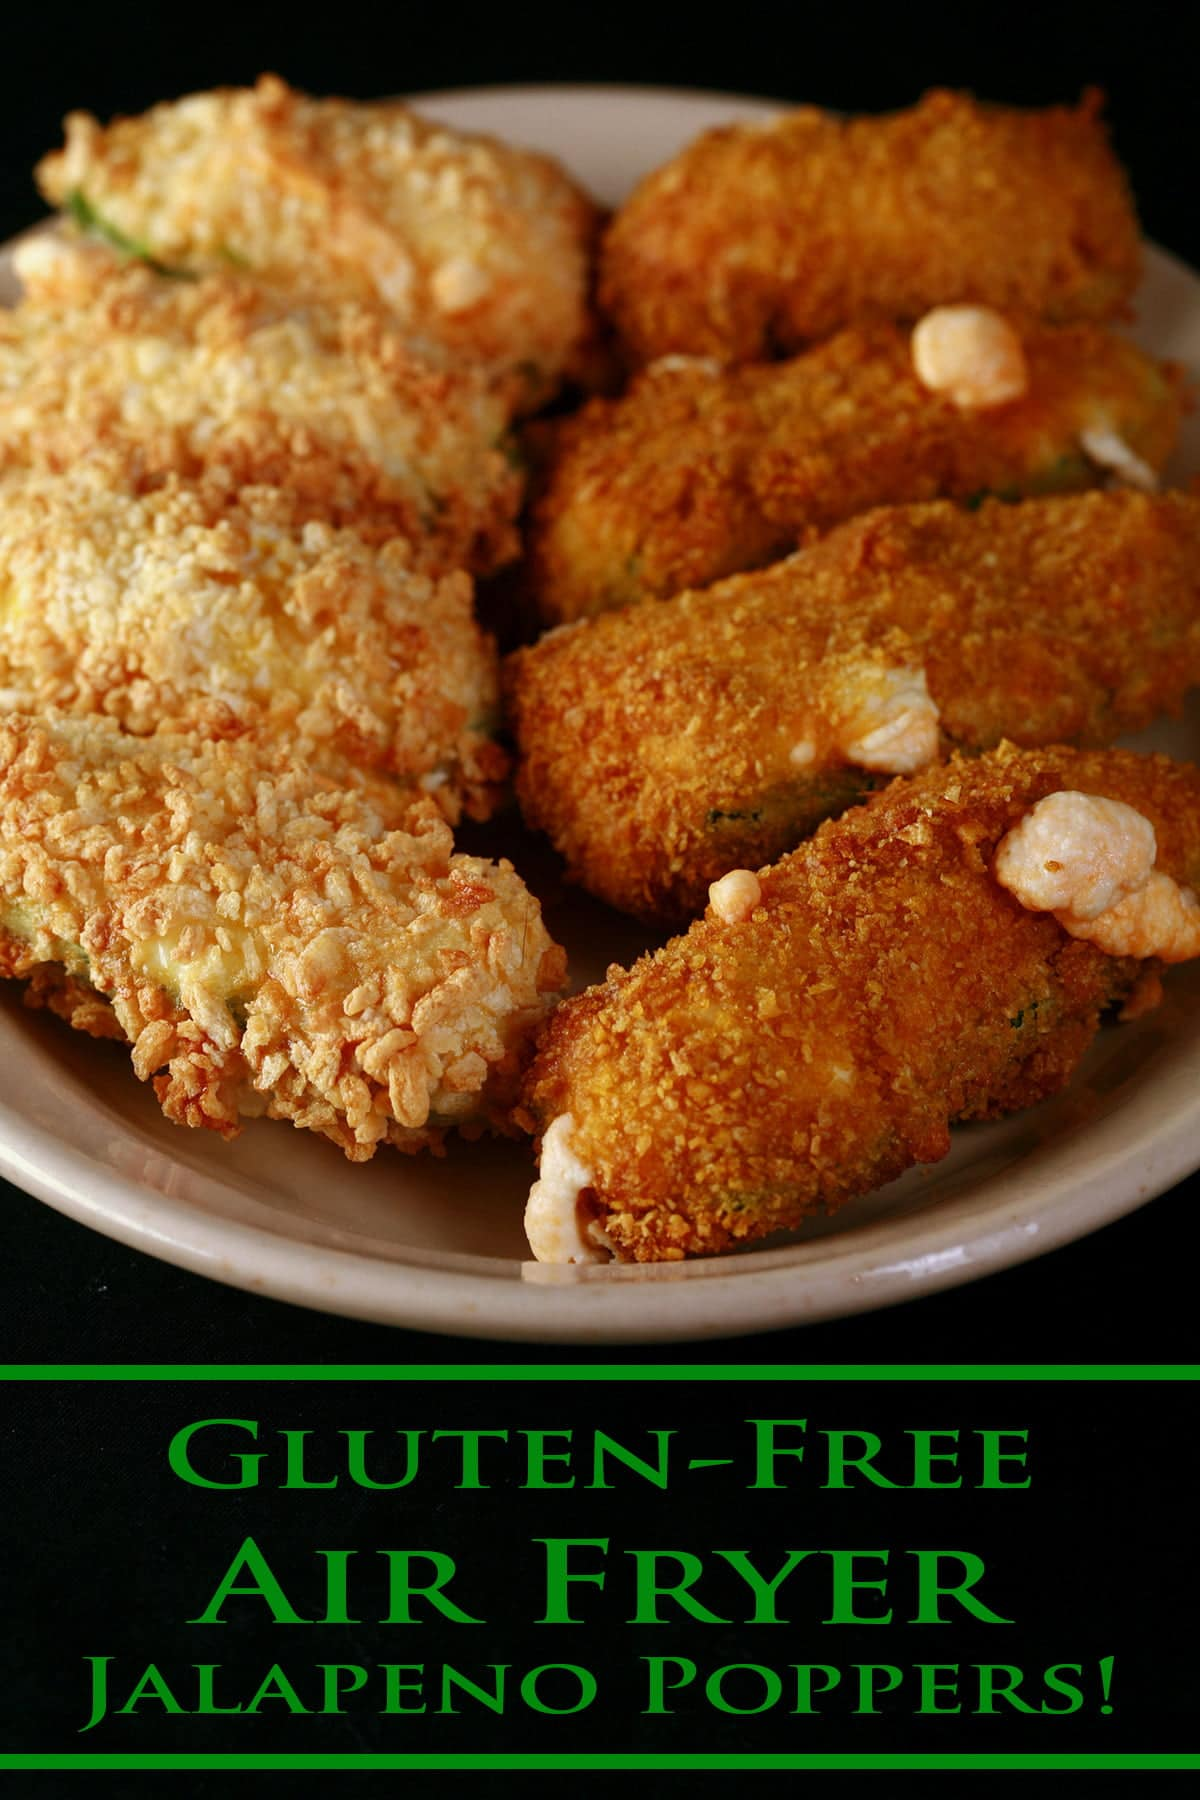 A small ivory colour plate holds two different types of gluten-free jalapeno poppers. They have been cooked in an air fryer.